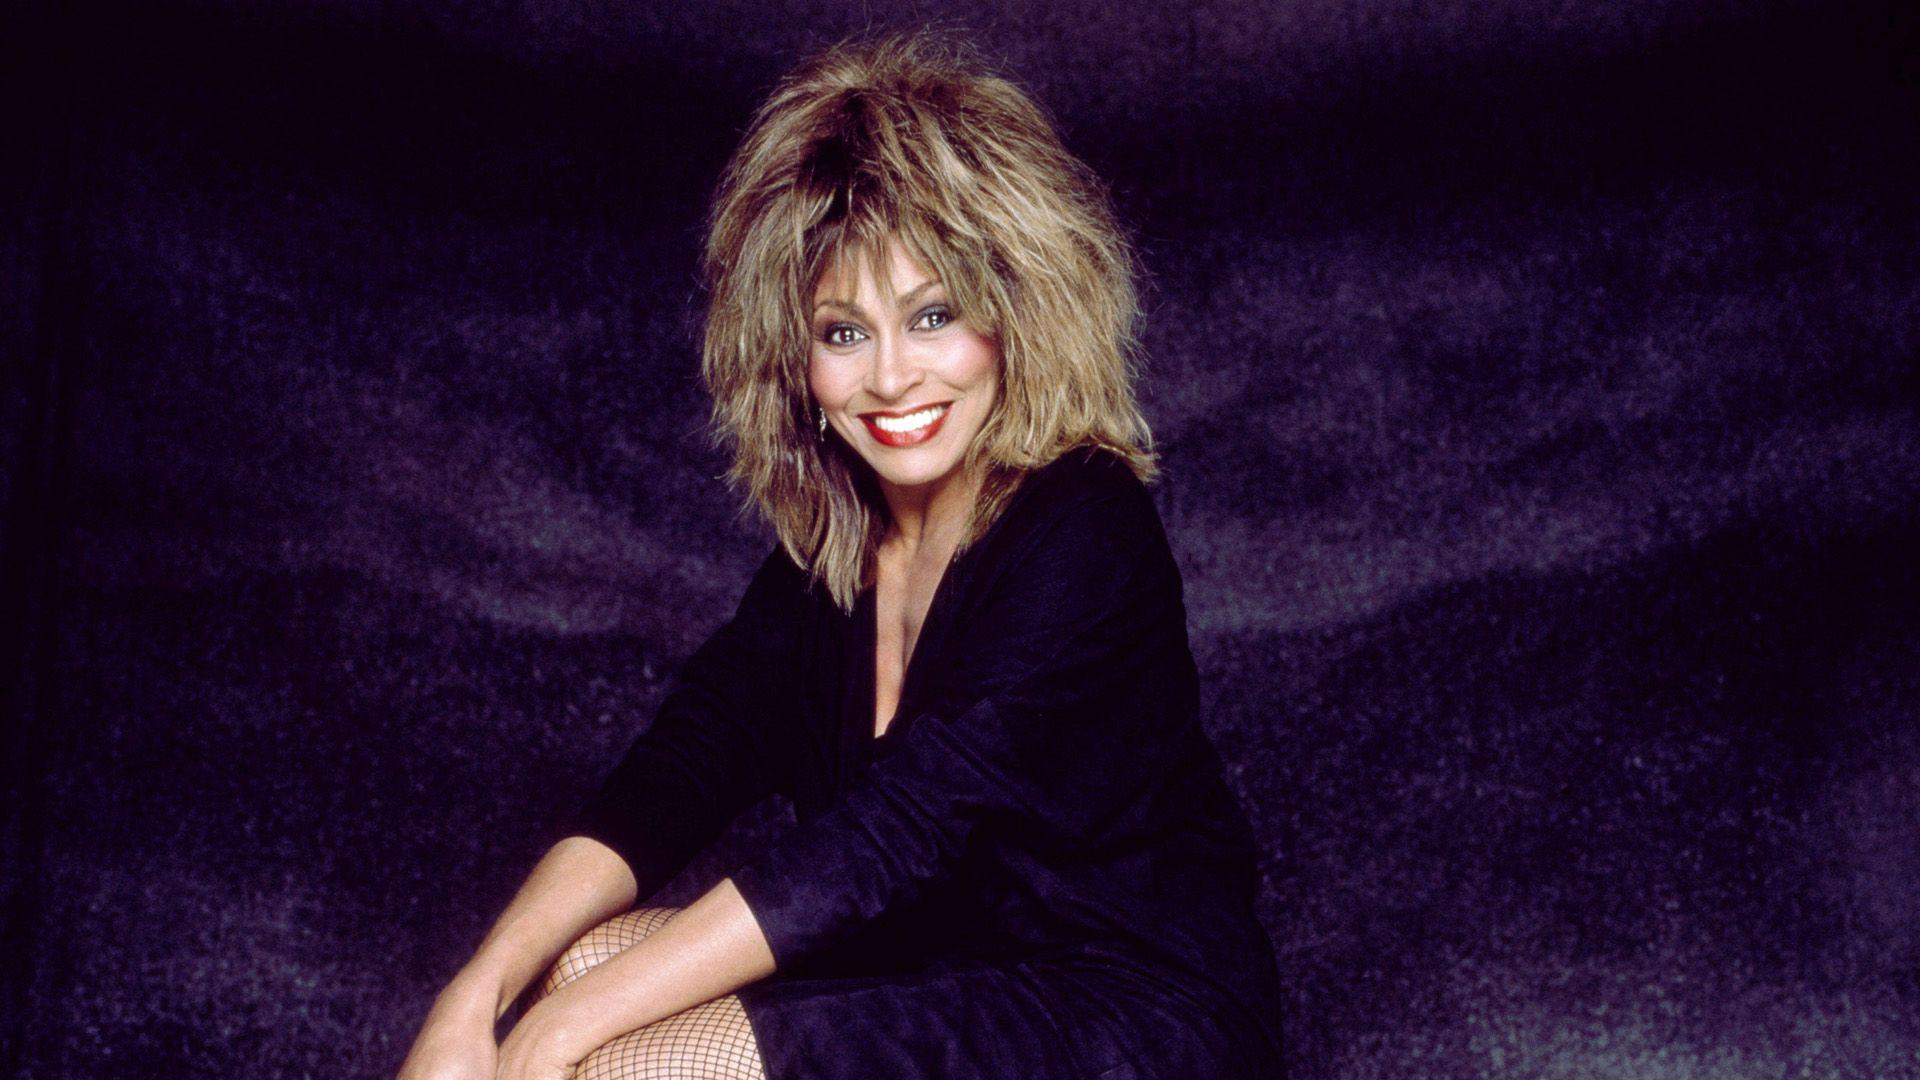 Tina Turner Phone number, Email Id, Fanmail, Instagram, Tiktok, and Contact Details